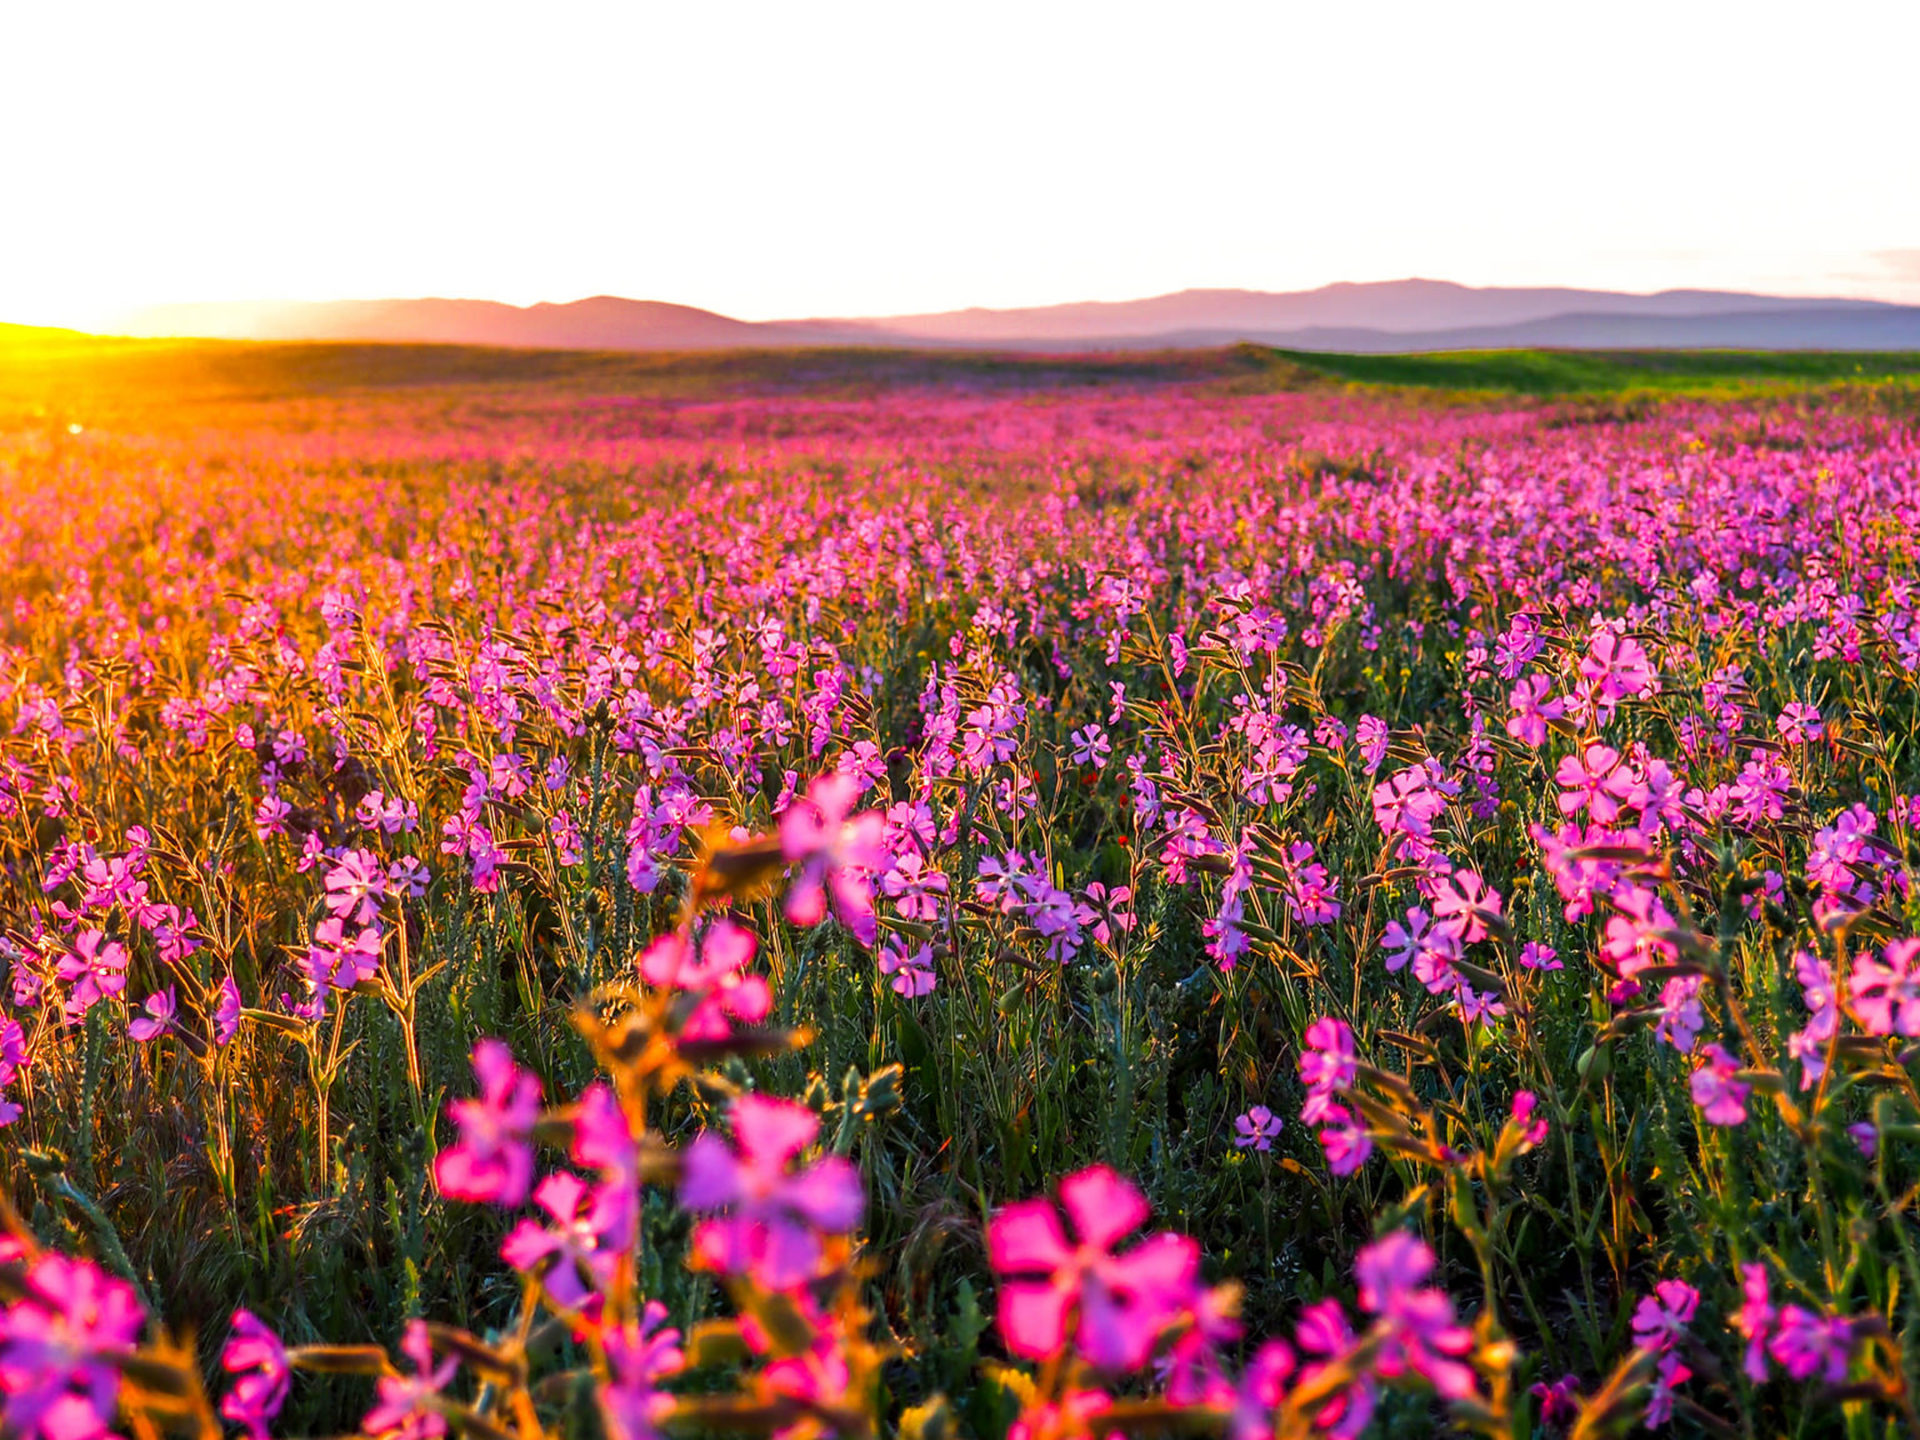 Scenery Wallpaper Hd Free Download Sunrise Field With Pink Flowers In The Early Morning Hd